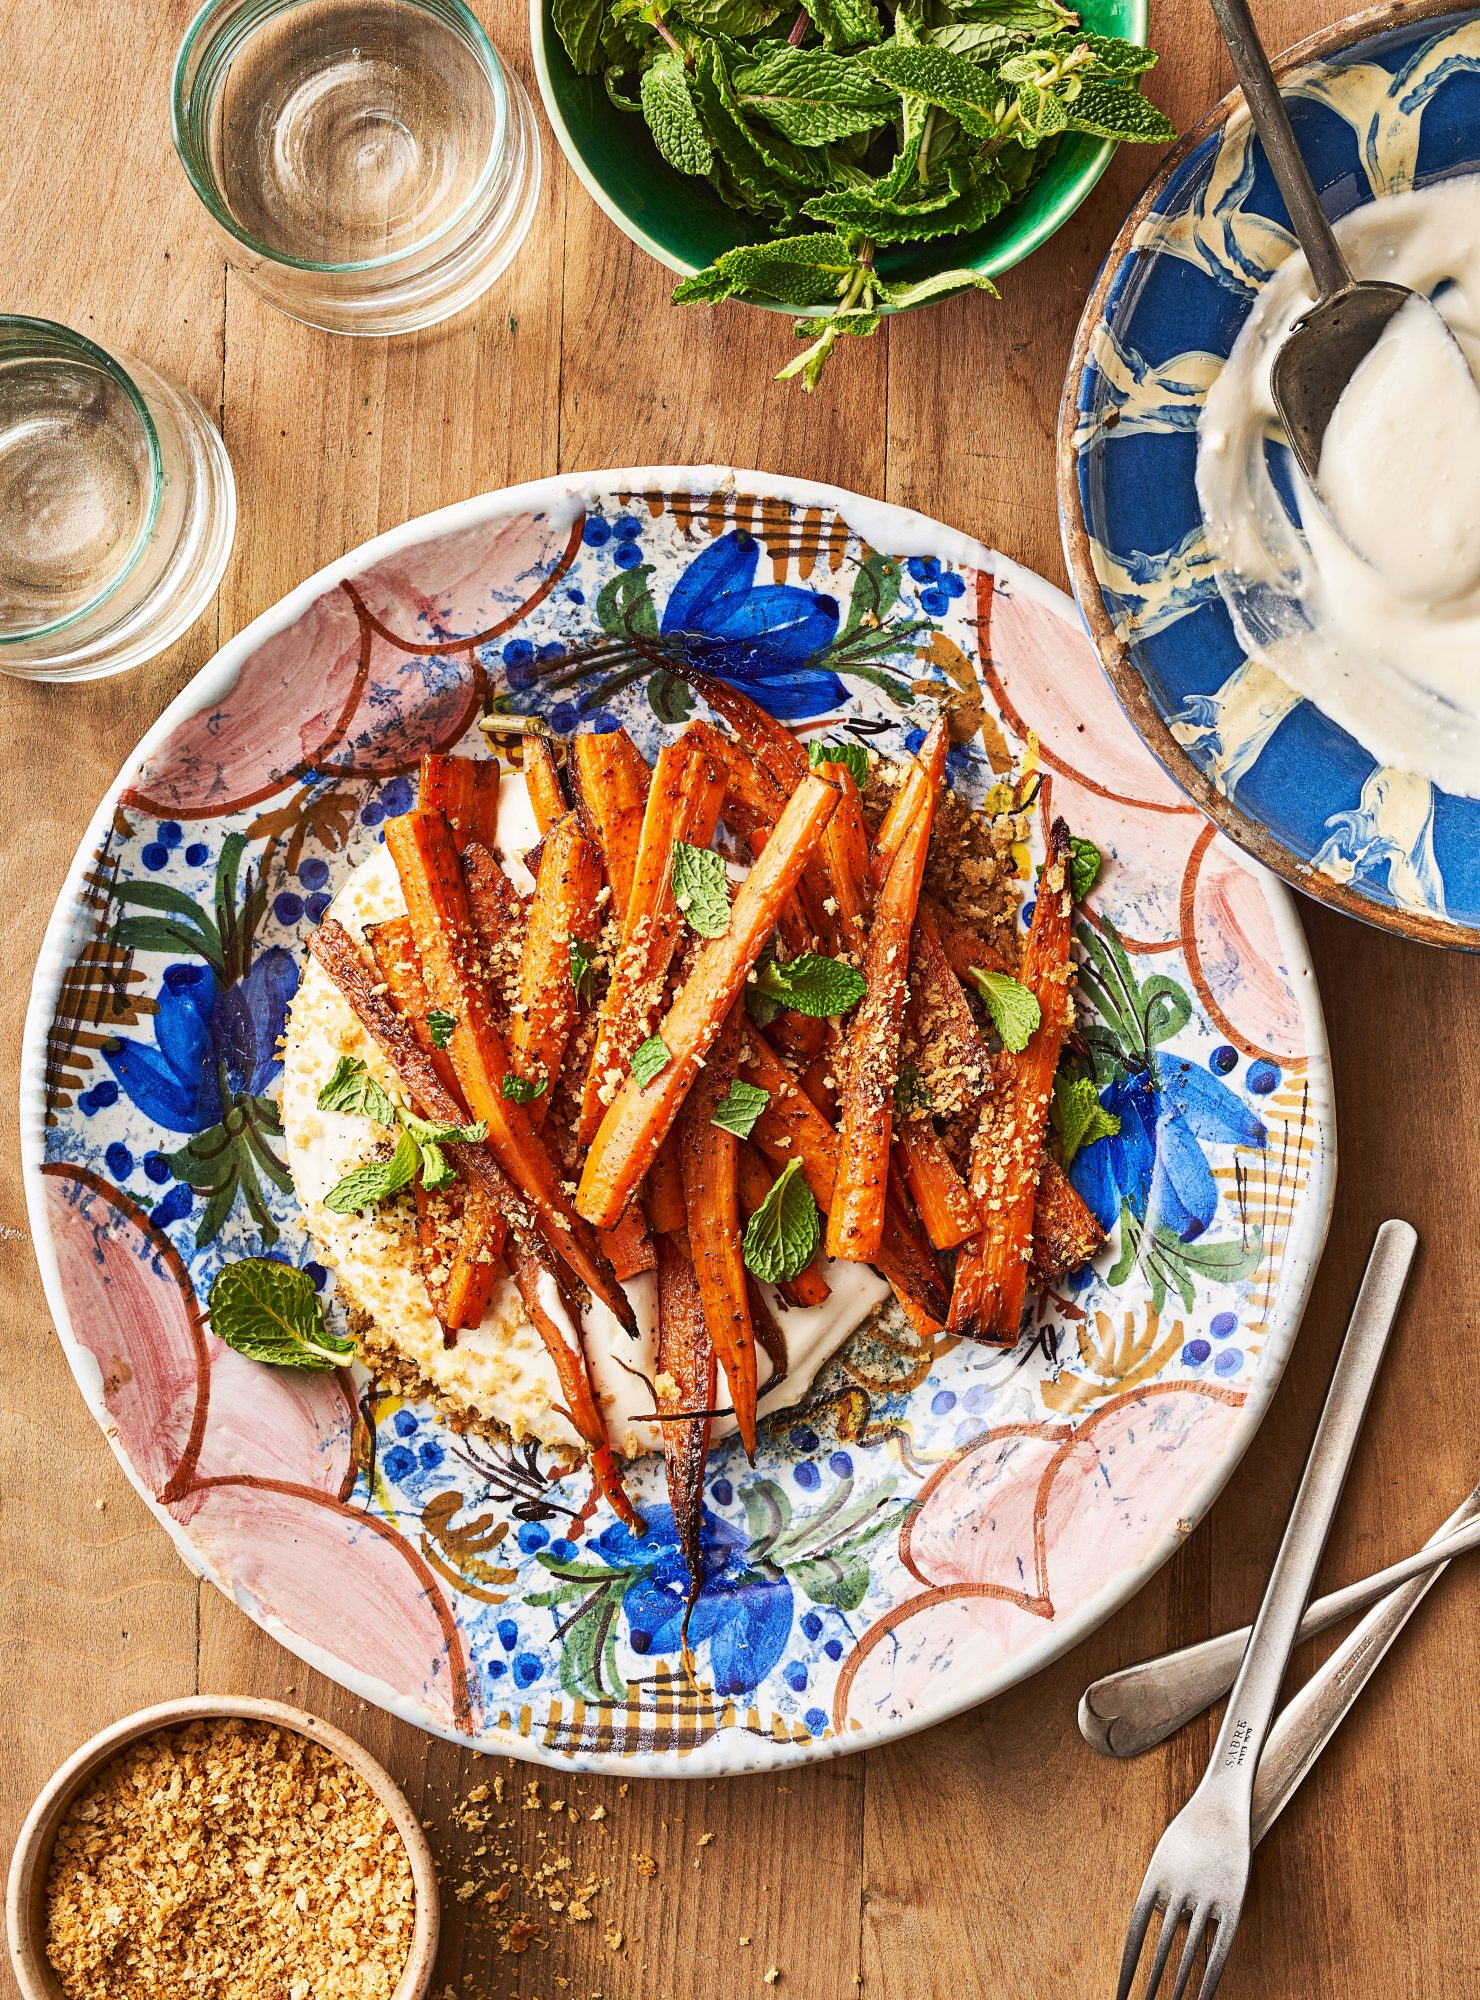 Coby Ming and Damaris Phillips' Sumac Carrots with Feta Mousse and Crispy Panko